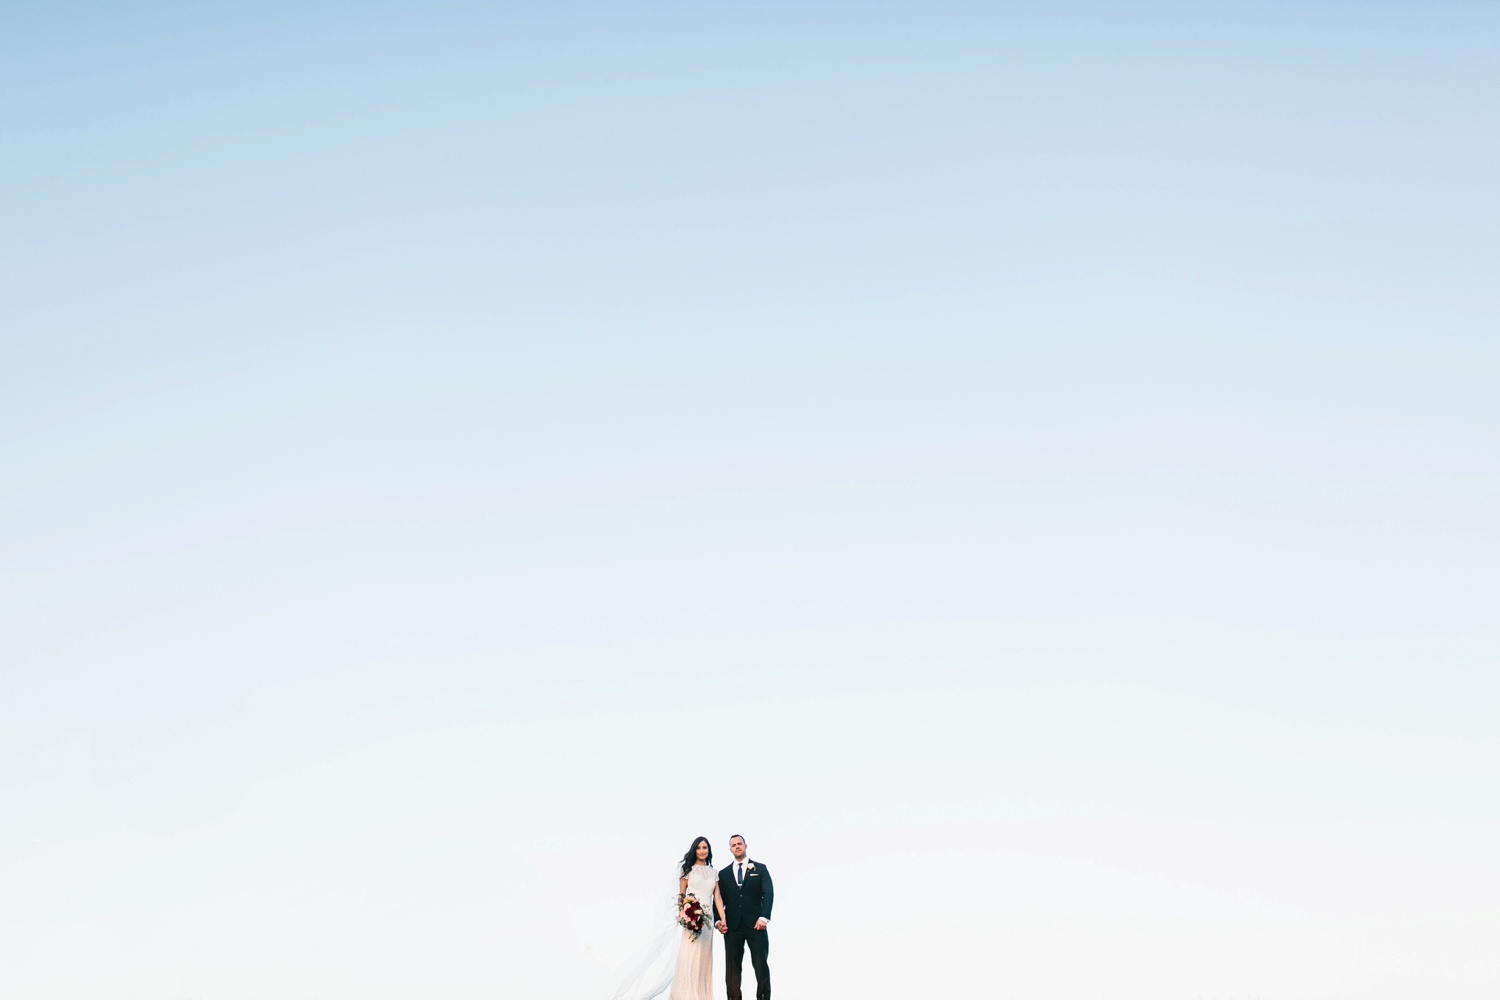 Kadee + Tyler | a raw, emotional wedding at the Filter Building on White Rock Lake in Dallas, TX by North Texas Wedding Photographer, Rachel Meagan Photography 166